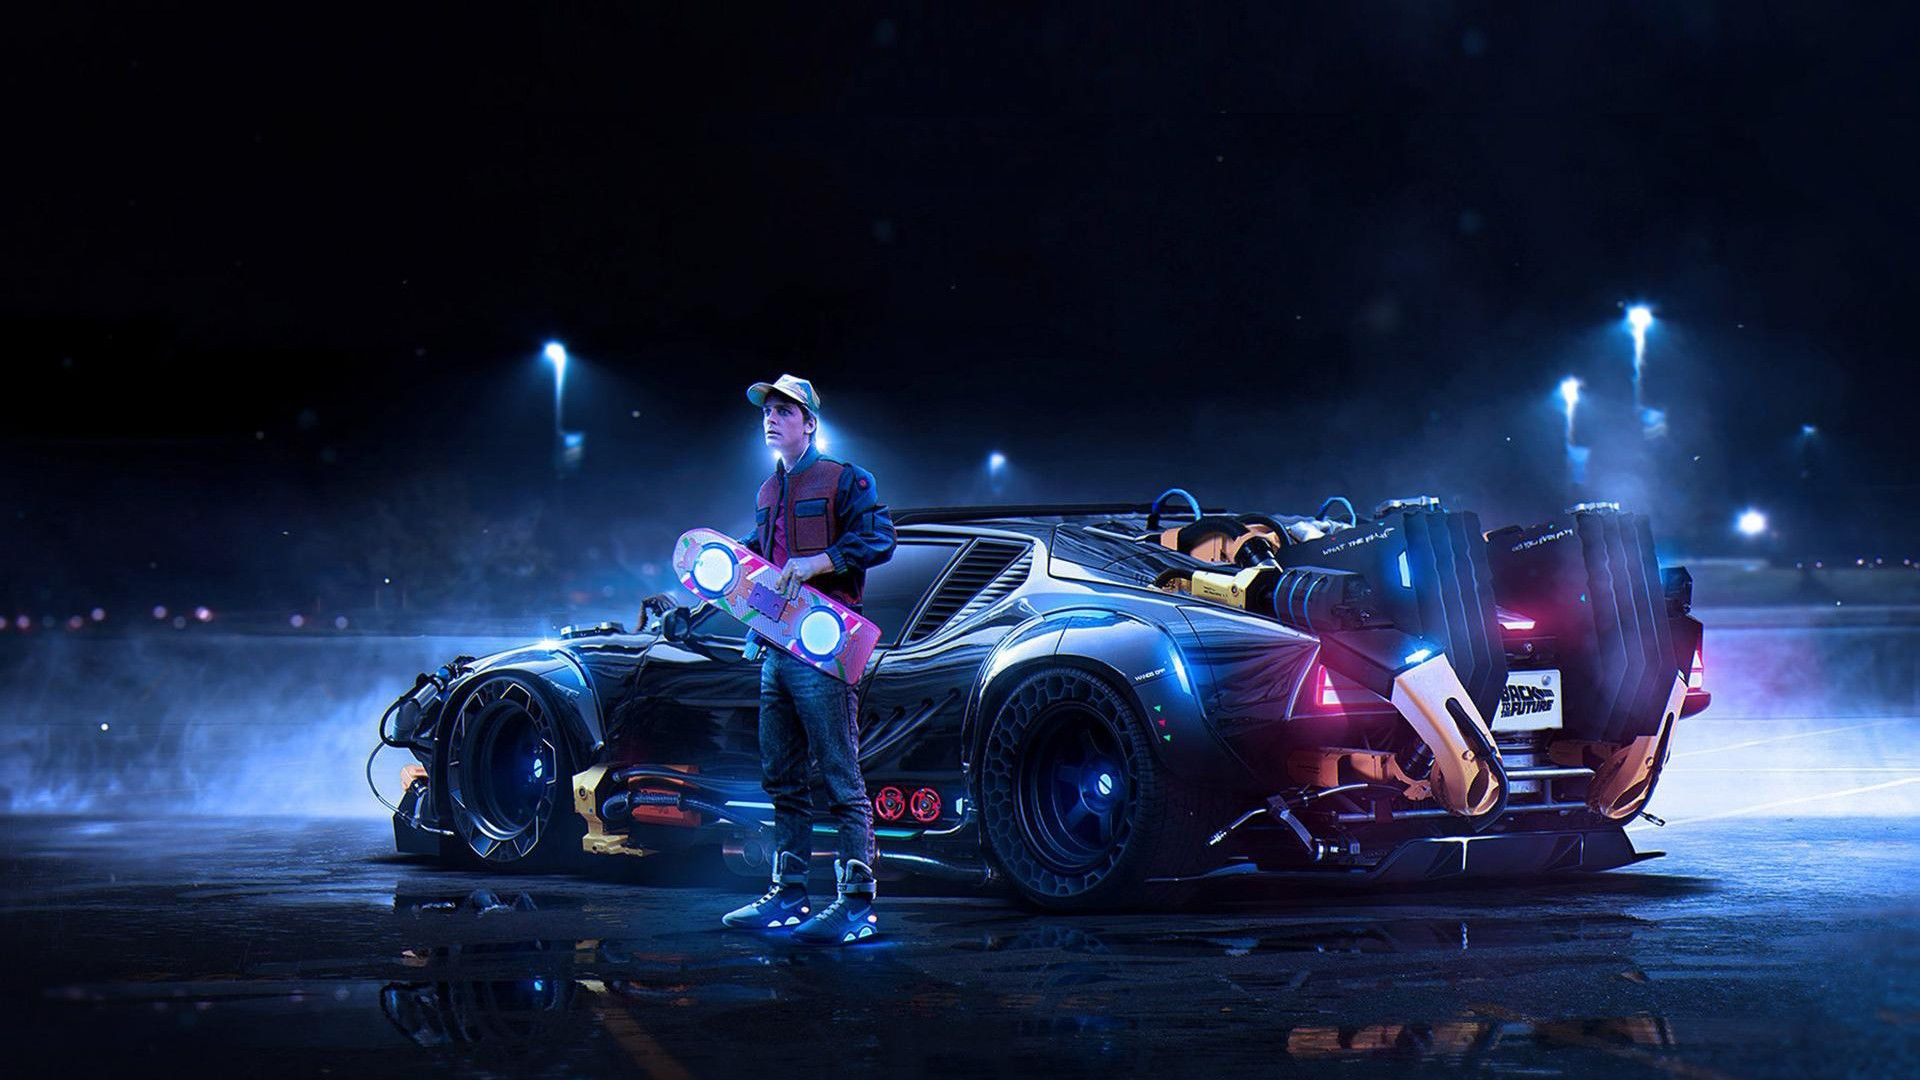 115372 Back To The Future Wallpaper 1920x1080 For Ipad Jpg 1920 1080 Future Wallpaper Future Car Back To The Future